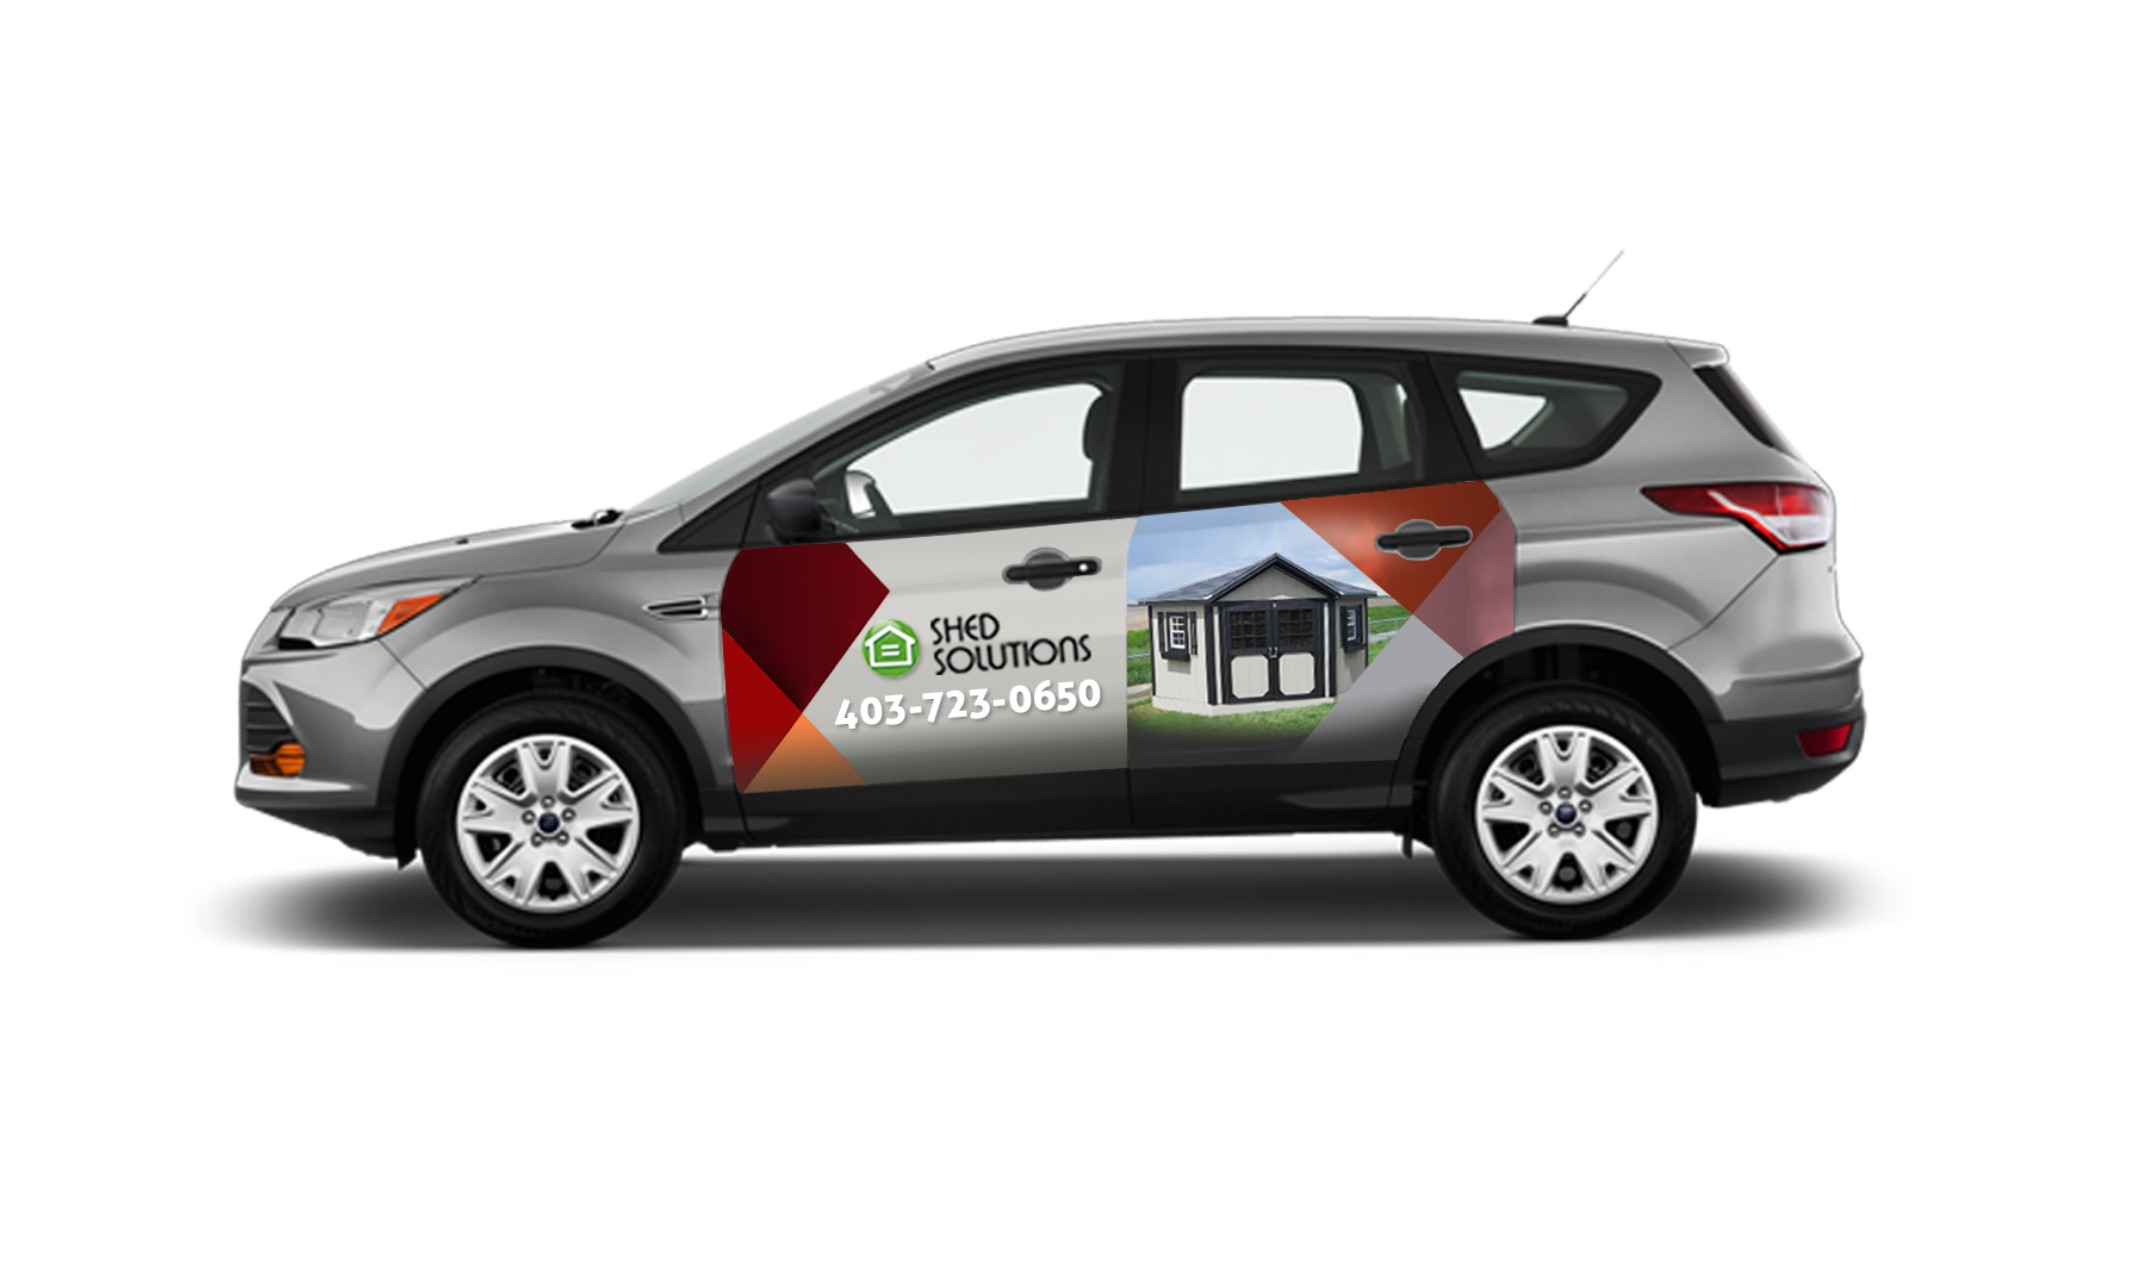 Recall Rate - Your campaign is at the eye level of future consumers making it an effective and safe form of advertisement. 97% of people recall vehicle wraps, 98% of people think that vehicle wraps create a positive brand image. 96% of people believe that fleet graphics are more impactful than billboards.